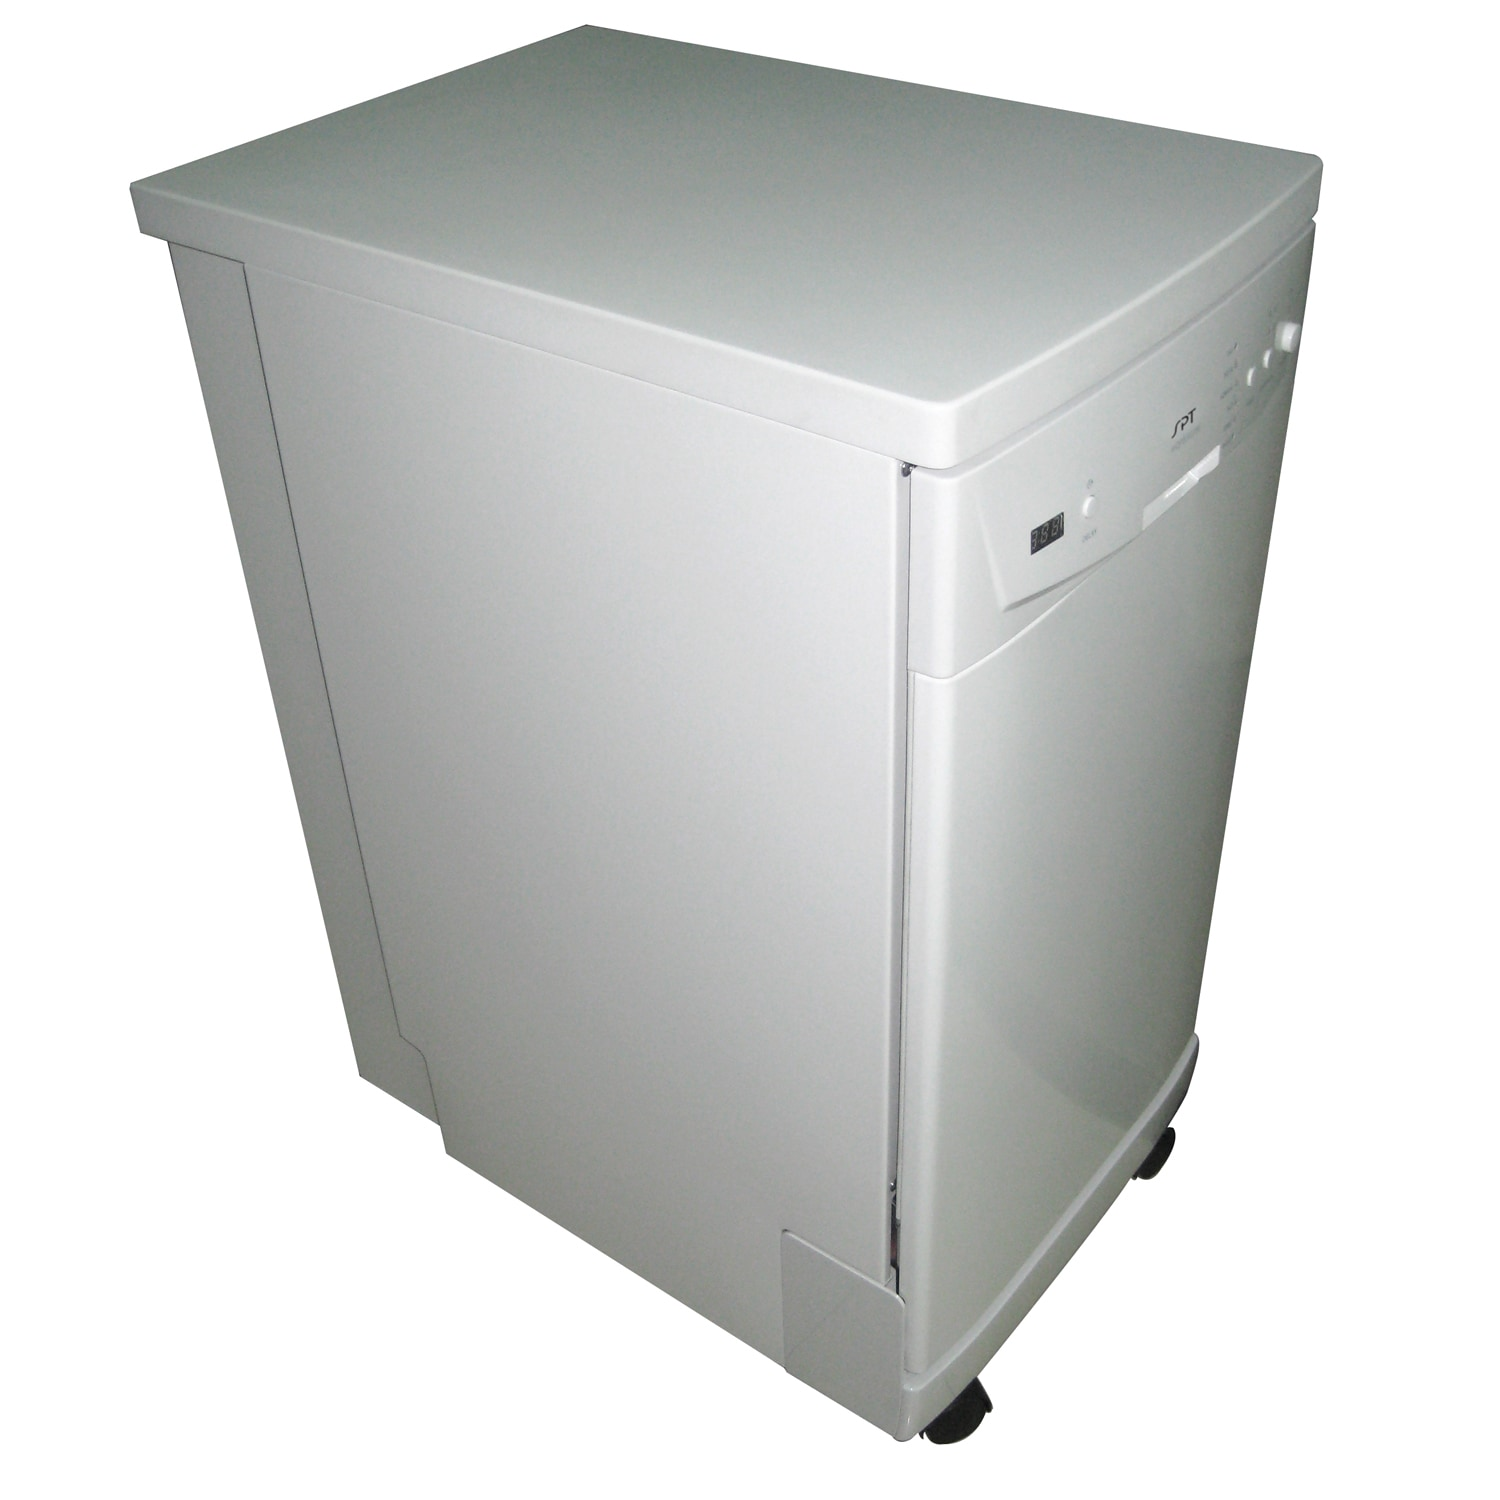 Lovely SPT SD 9241W White 18 Inch Portable Dishwasher With Energy Star   Free  Shipping Today   Overstock   16466838